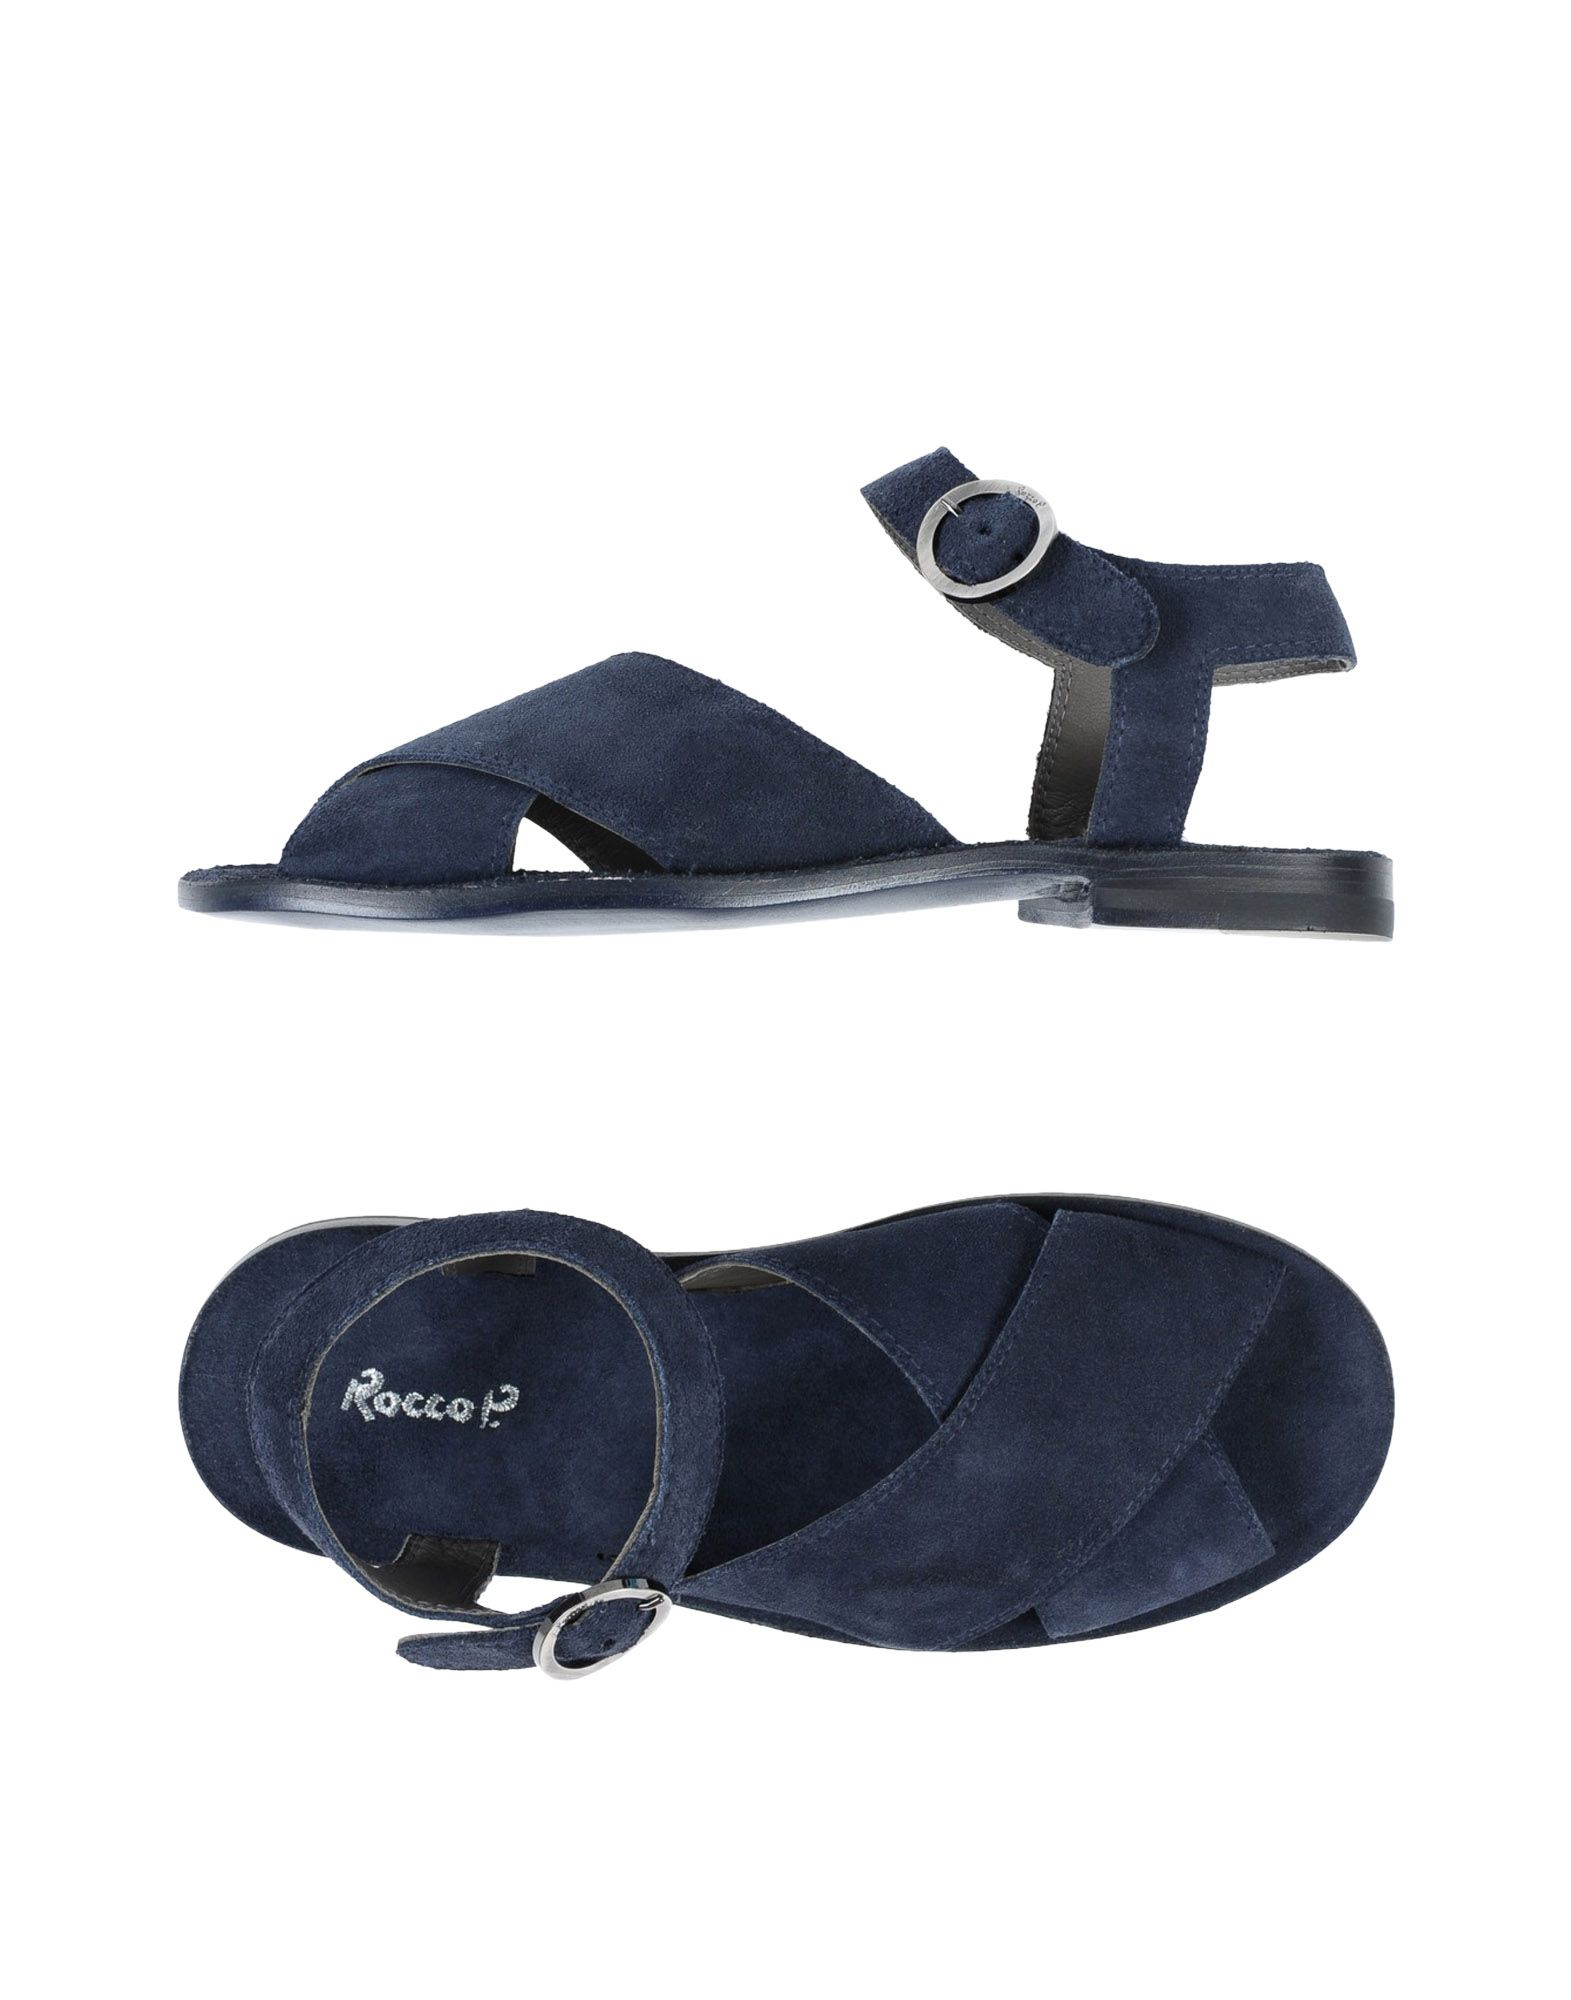 Rocco P. Sandals Sandals - Women Rocco P. Sandals Sandals online on  United Kingdom - 11410074WL e16c1a